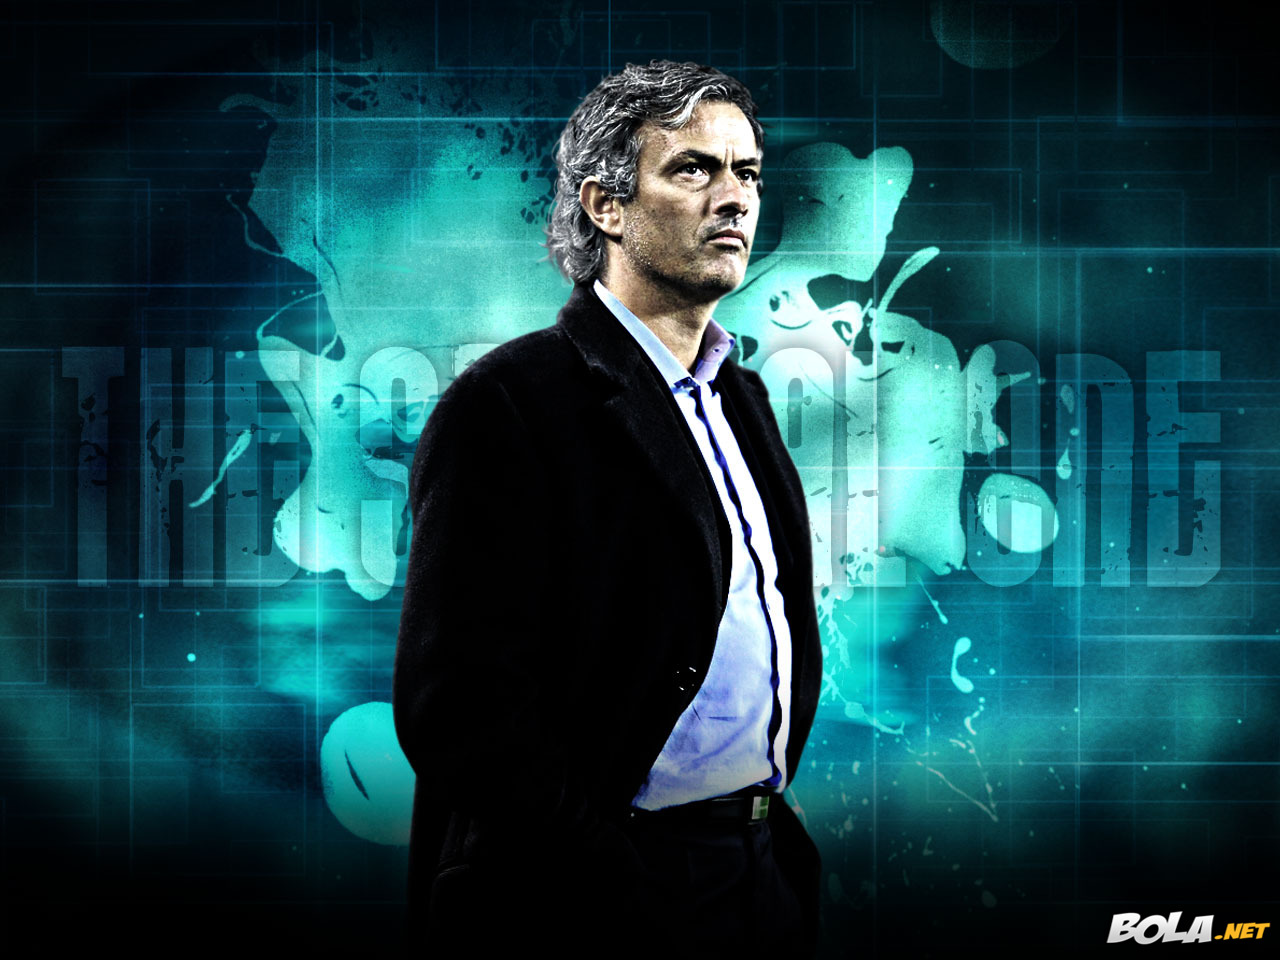 Jose Mourinho - The Special One WallpapersJose Mourinho The Special One